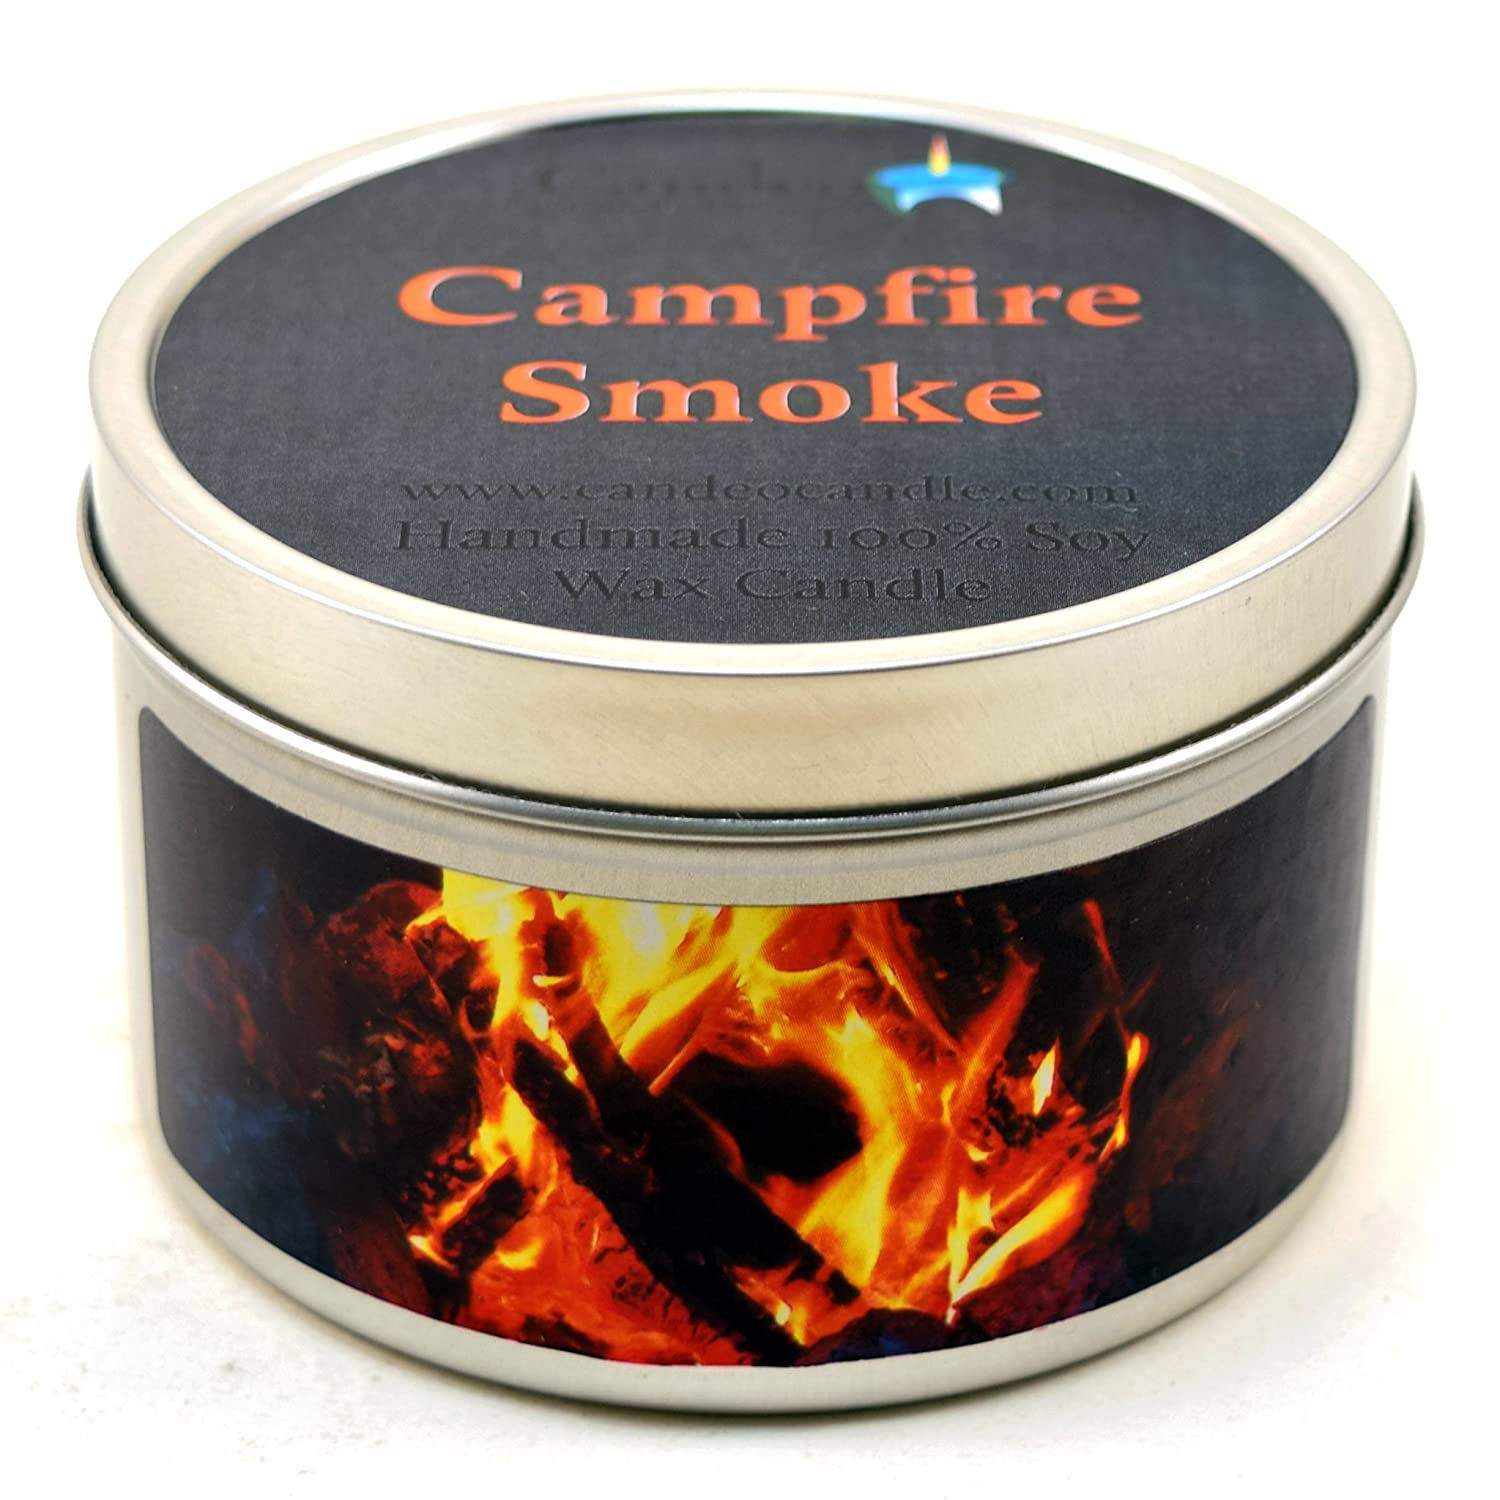 Campfire Smoke Super Scented Soy Candle Tin (4 oz) Candeo Candle 551